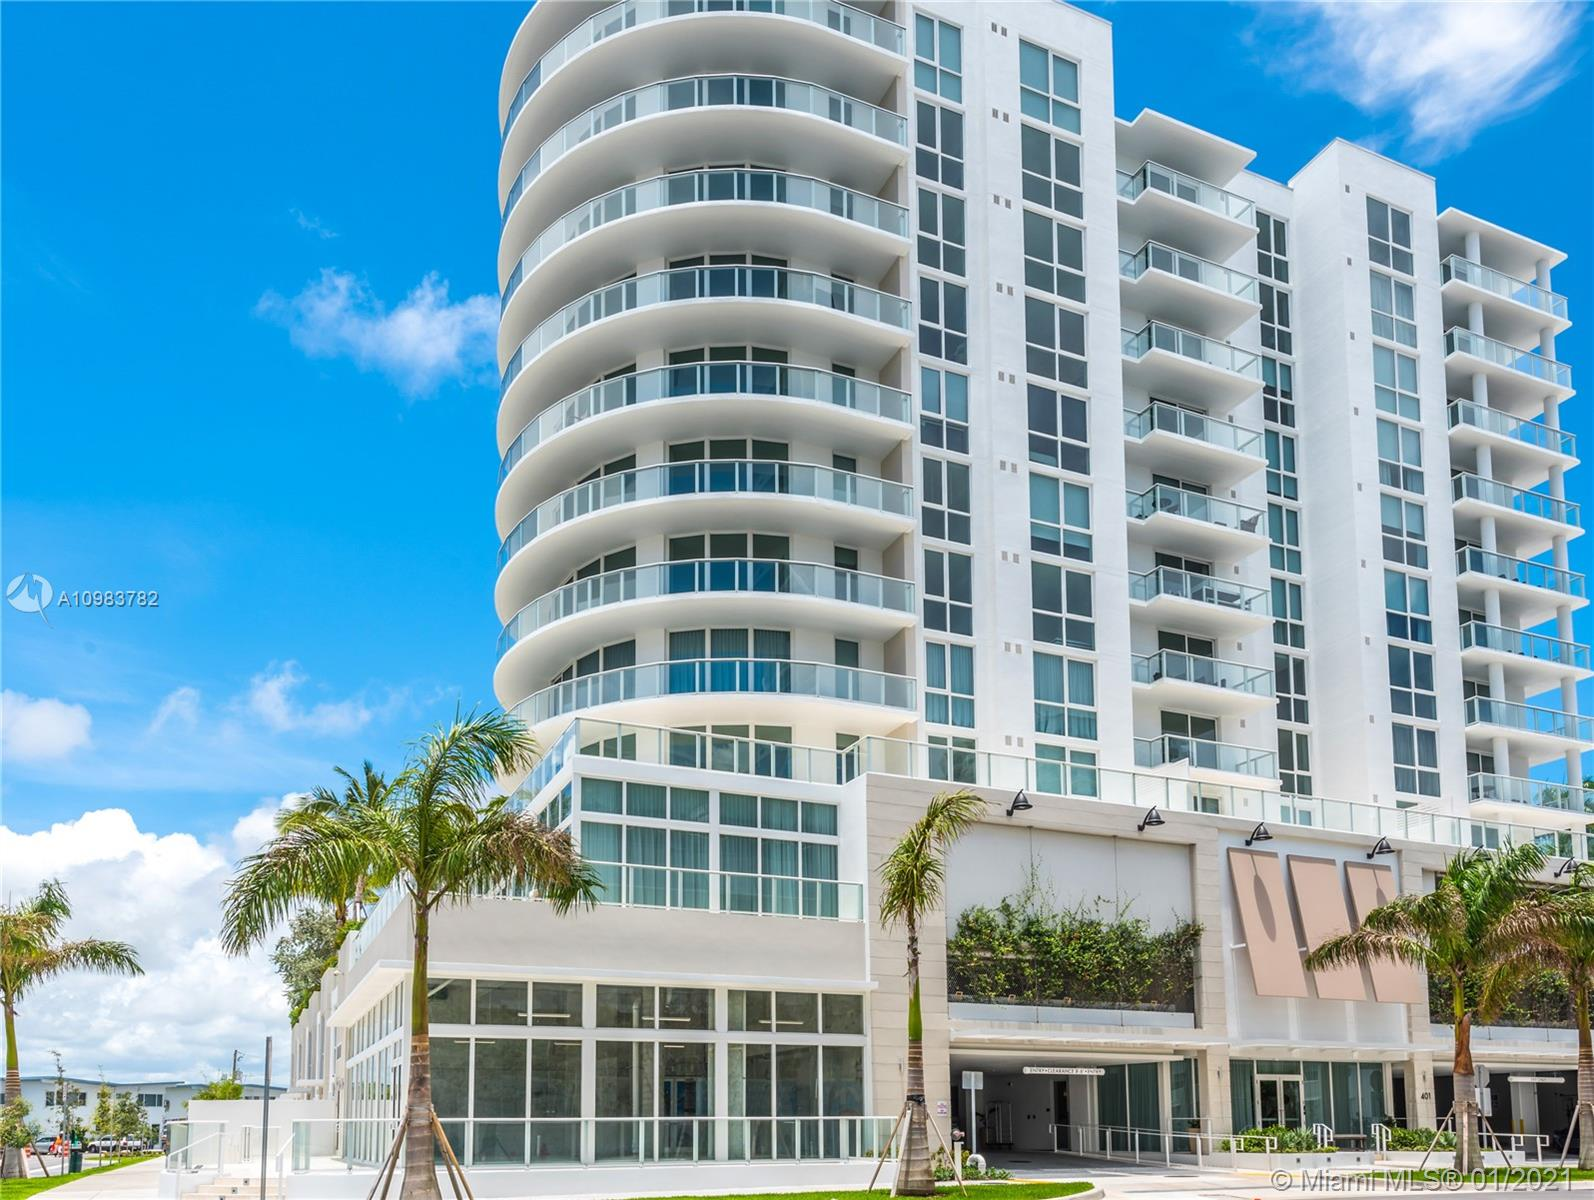 Magnificent newly-built 7th floor SOUTH WEST facing INTRACOASTAL-view condo, 2 bedroom-3 bath, living-dining + den with sofa sleeper, balcony, turn-key completely furnished with Gale Signature package by Now by Steven G, located in sought-after Ft. Lauderdale North Beach Village, one easy block from the beach! Marble flooring throughout, marble bathroom, high-end kitchen appliances with Italian cabinetry, washer/dryer, basic cable/internet/local phone. Current beach service and soon-to-open signature restaurant & hotwl as part of the Gale landmark restoration project. Offering short-term lease (minimum one month) , up to 6-12 months.